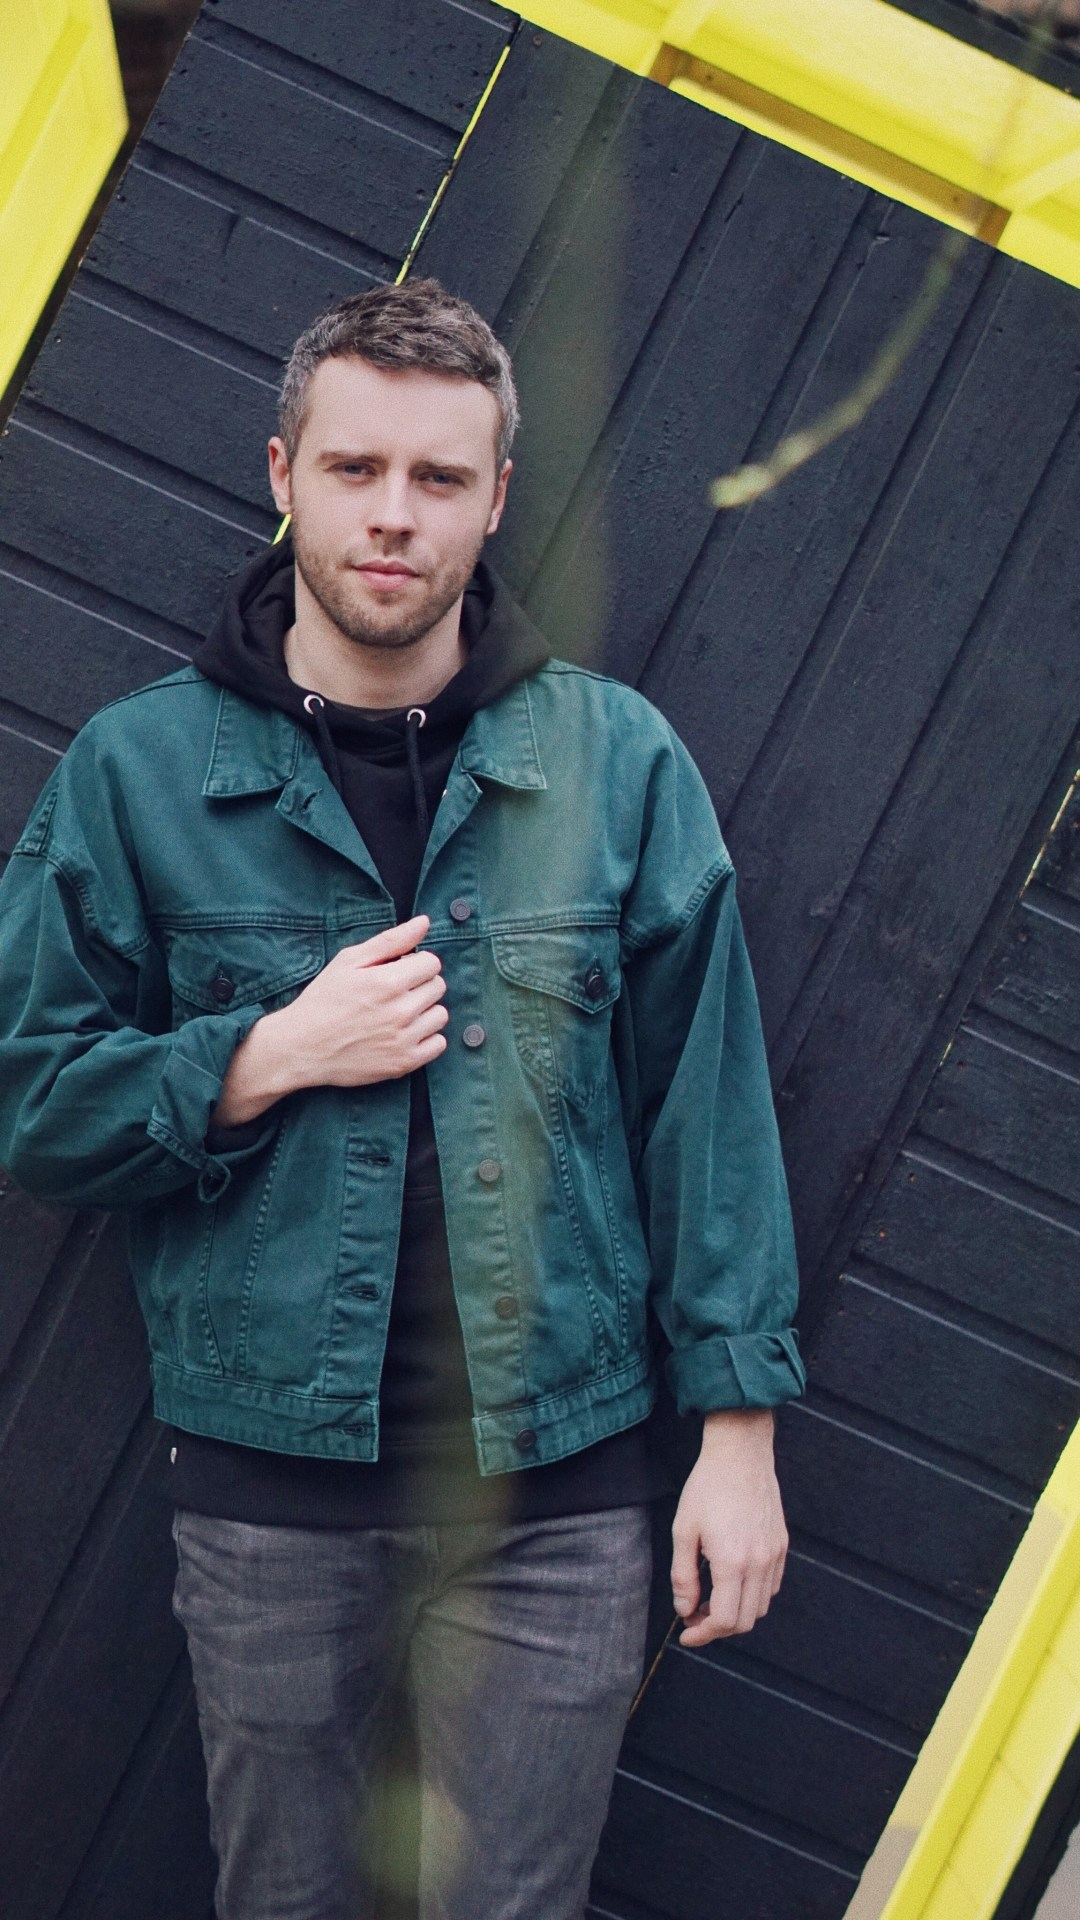 "Wearing Oversized Denim Jacket in Bottle Green from ASOS, Hoddie from Illusive London and Jeans from ALLSAINTS. ""Black Shed Expanded"" by Nathaniel Rackowe, shot outside Parasol unit foundation for contemporary art."